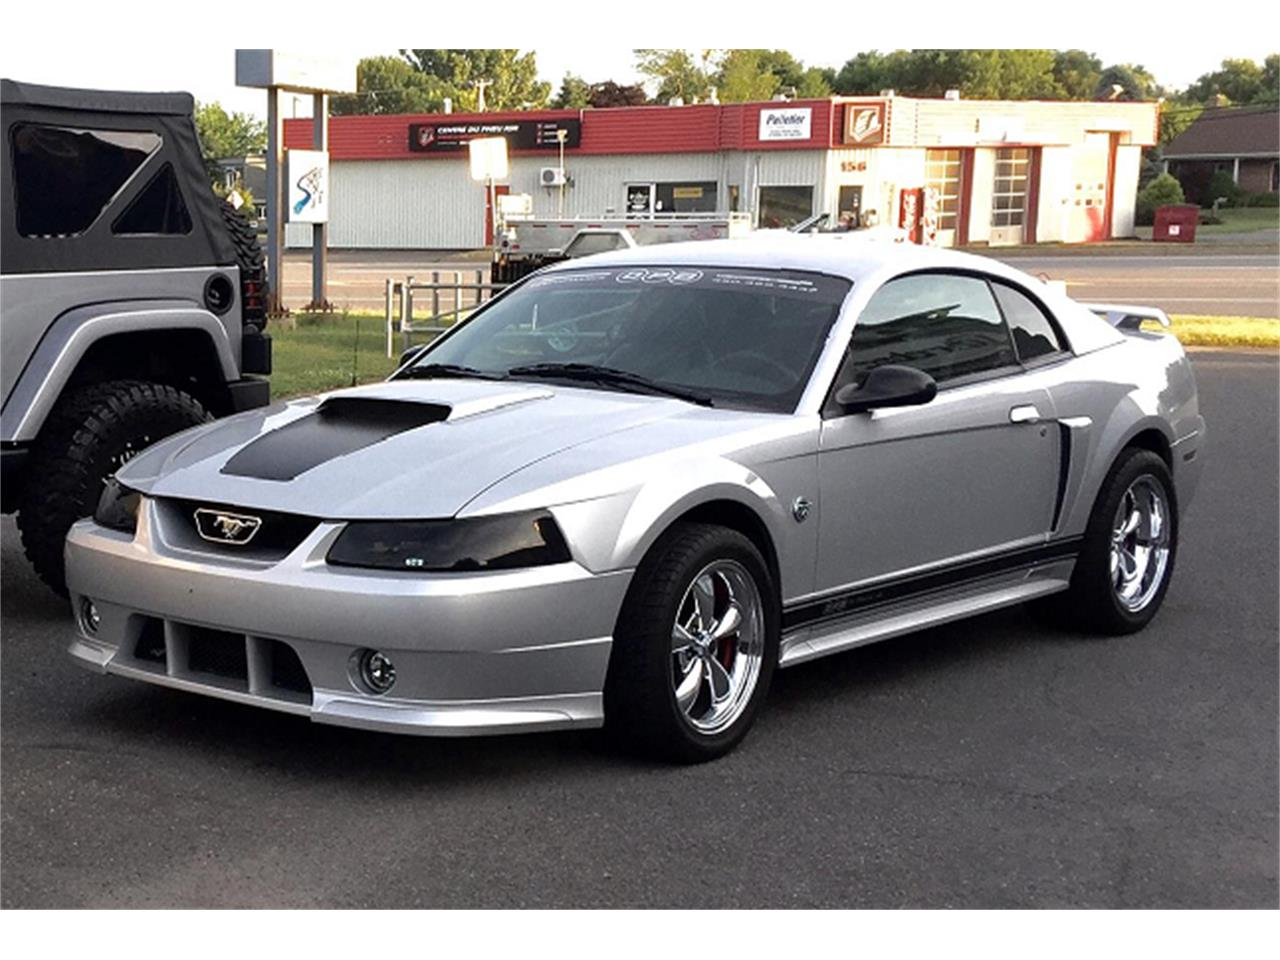 Large picture of 04 mustang gt mnz8